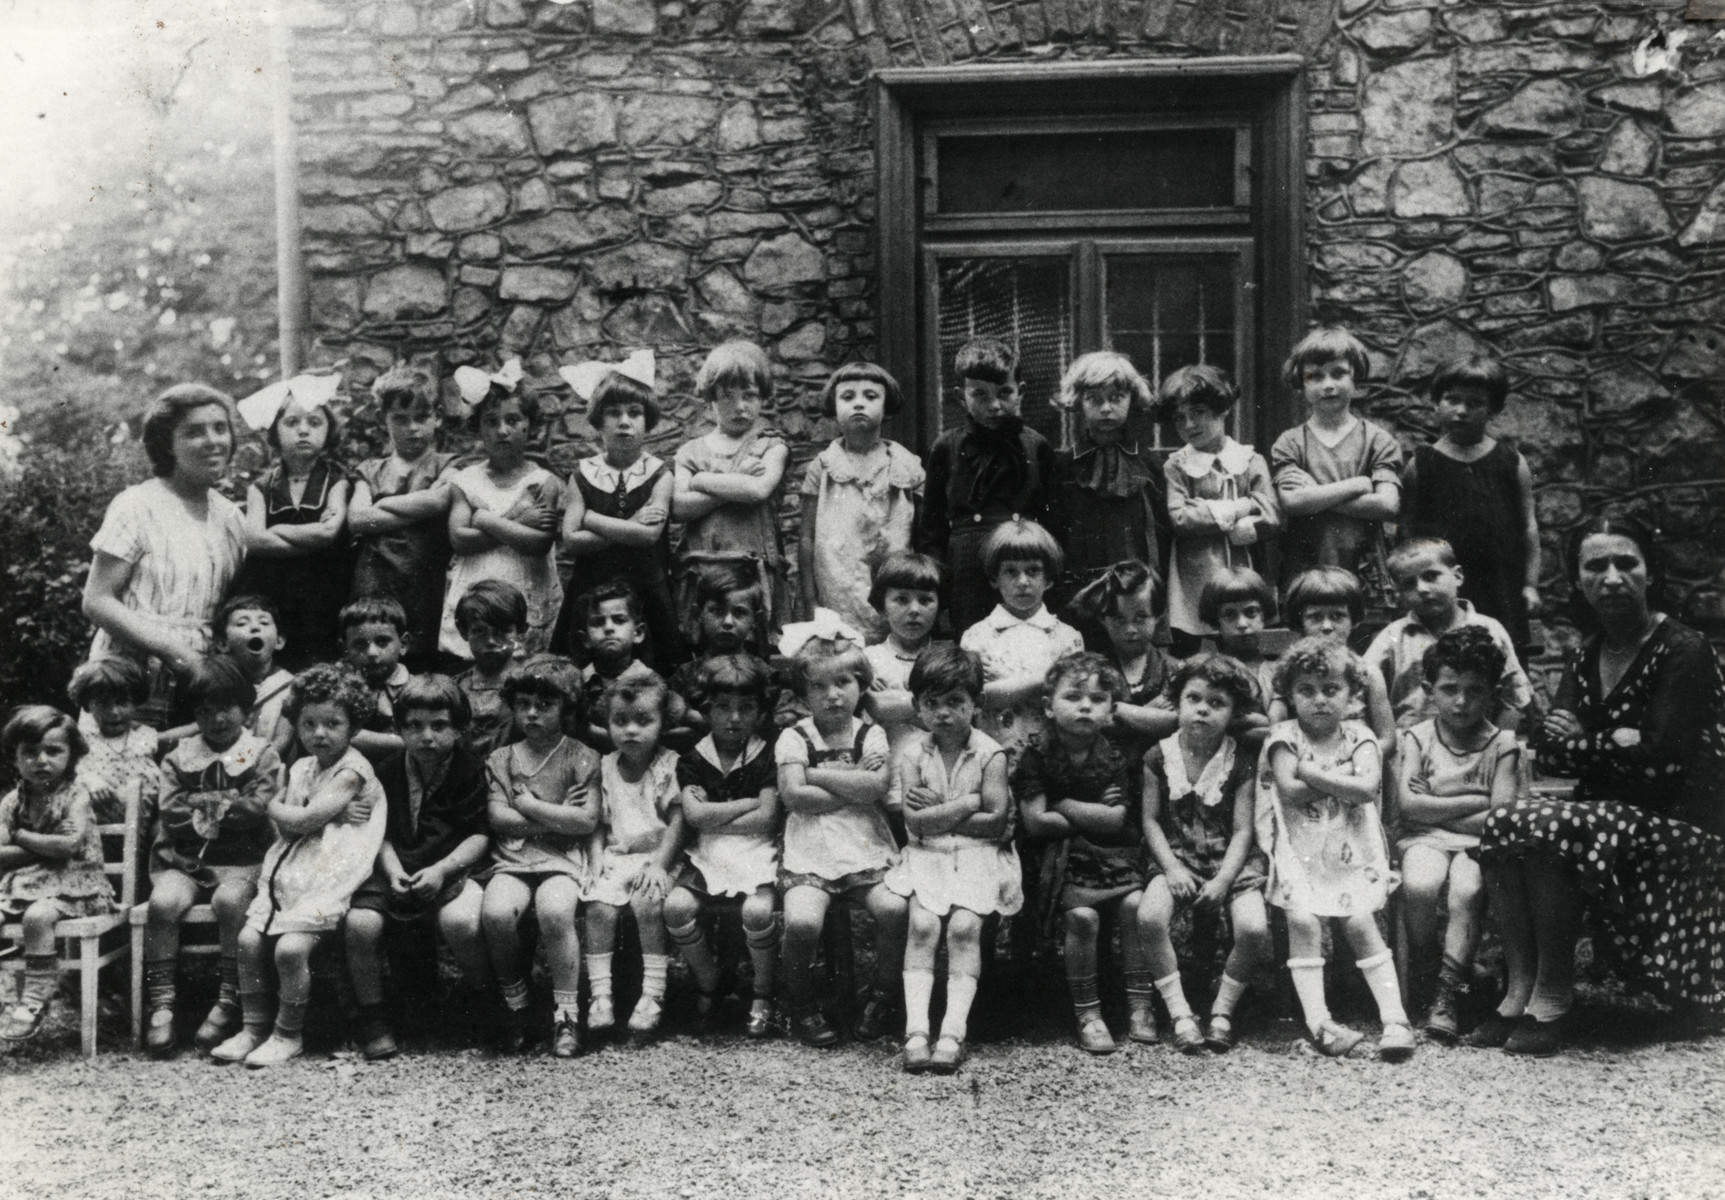 Group portrait of a Jewish kindergarten class in Chrzanow.    Mali is pictured in the middle of the front row with a bow in her hair and crossed arms.  To her immediate left is Lajka Igel (later Karp).